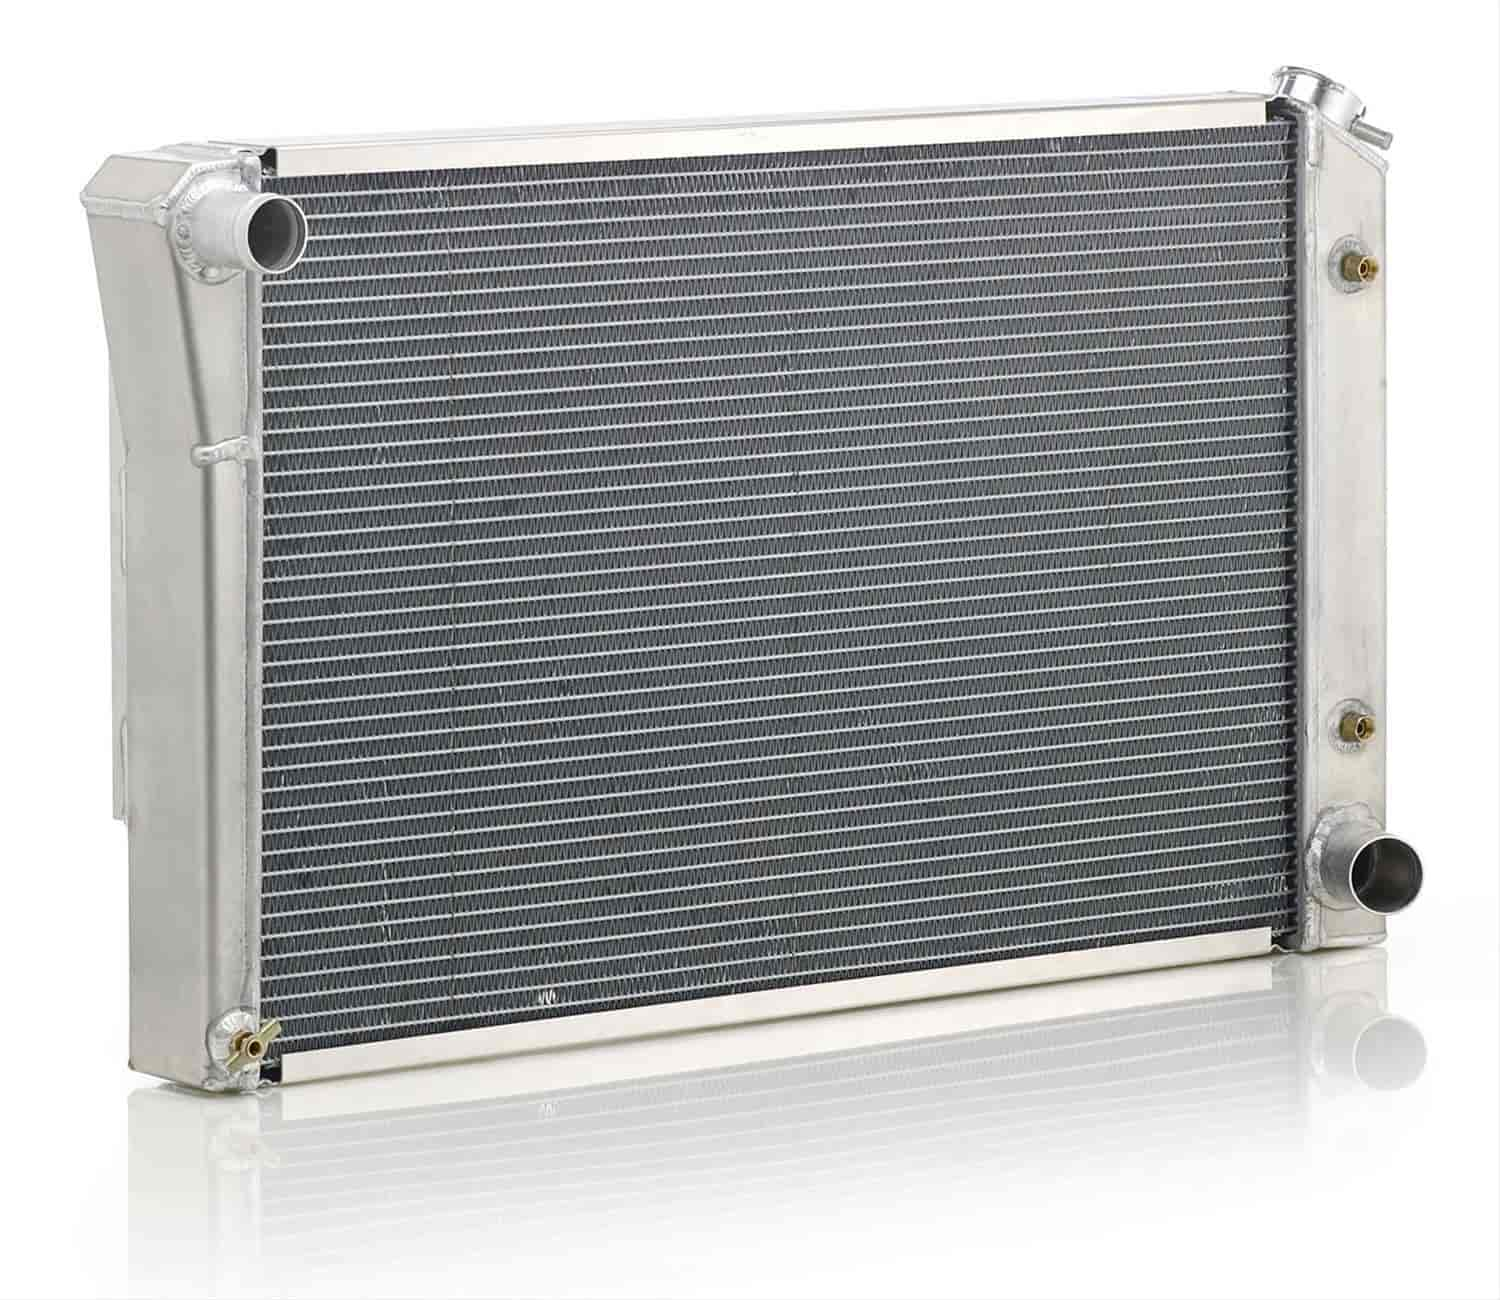 Be Cool Radiators 62339 - Be Cool Crossflow Aluminum Radiators